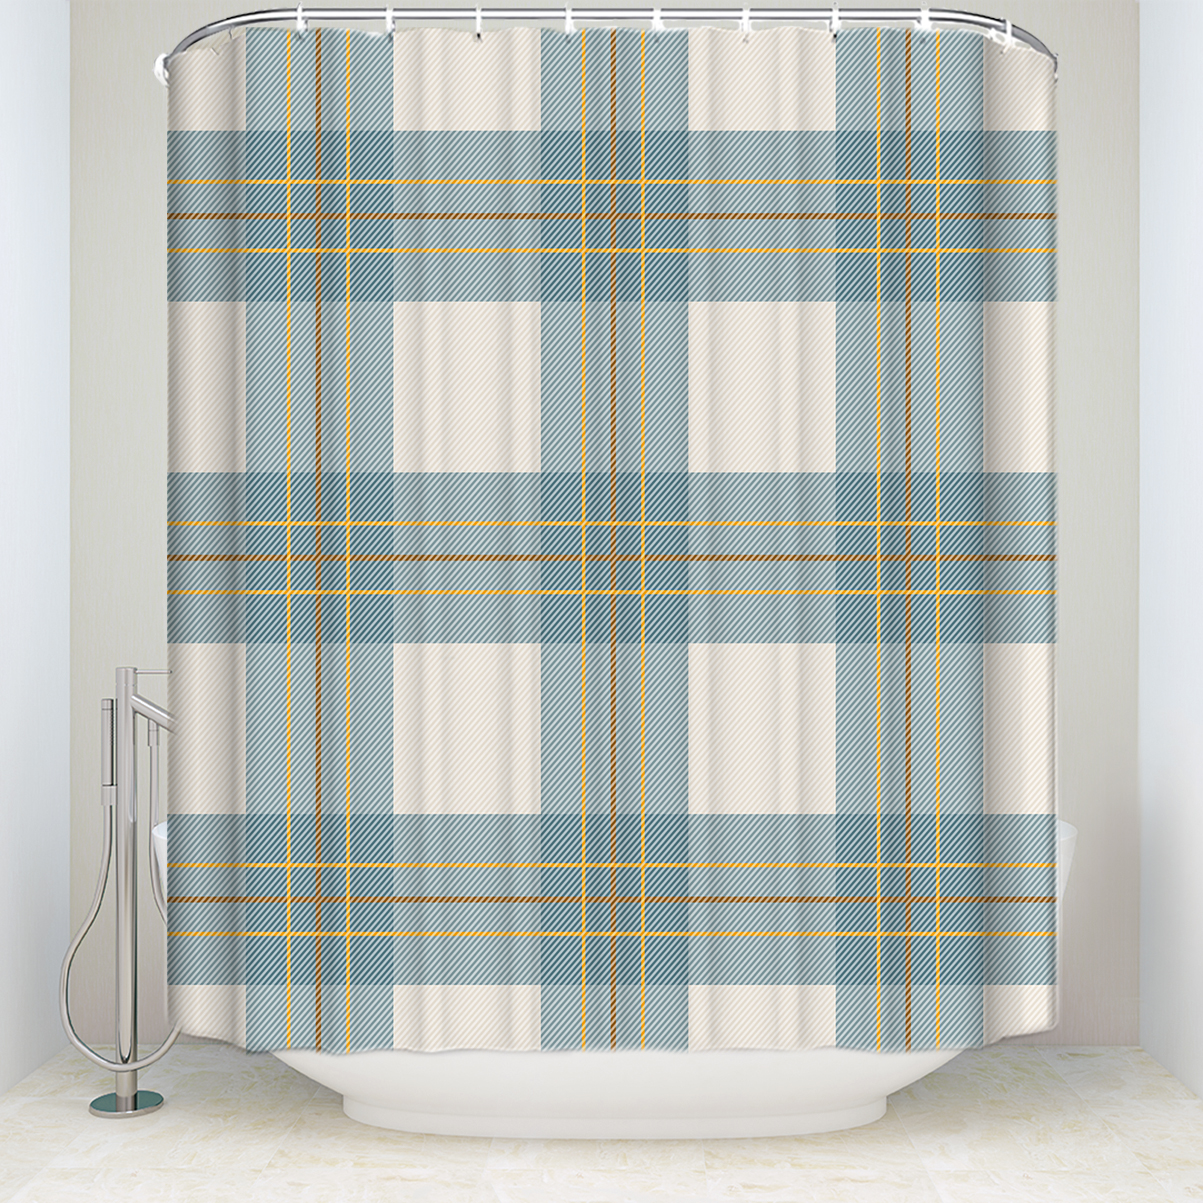 Us 18 51 40 Off New Waterproof Scottish Plaid Shower Curtain With Hooks Polyester Fabric Retro Striped Bathroom Curtains For Home Decorations In